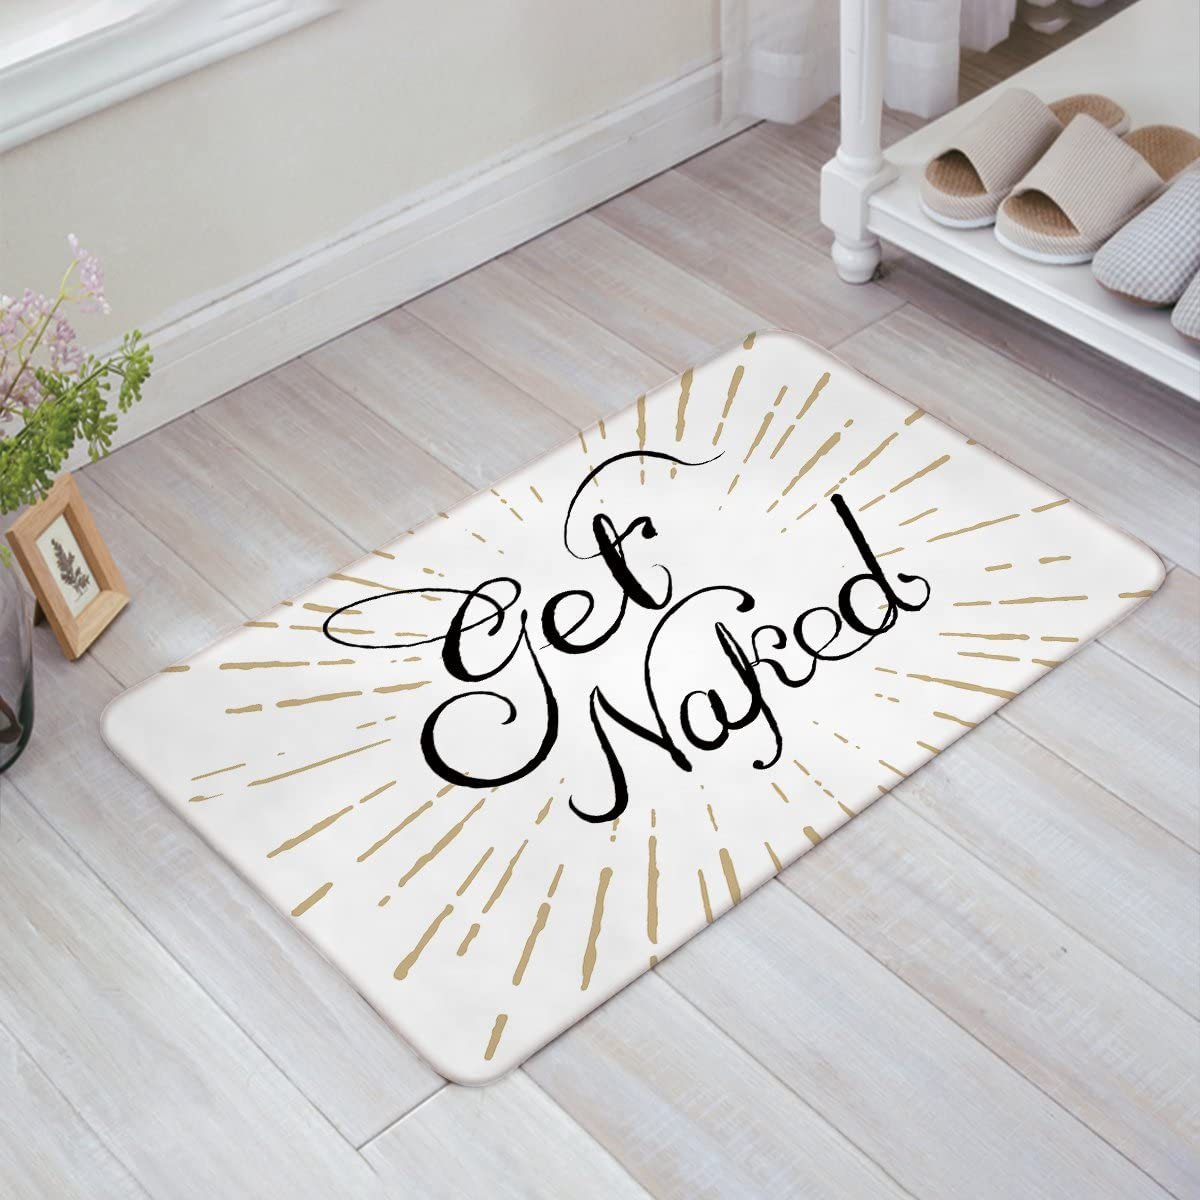 Beach Theme Indoor Doormat Front Door Mat, The Beach Is My Happy Place-Rustic Wooden Plank Board Sign with Starfish Welcome Mat Entrance Door Mat Non-Slip Floor Mat, Soft and Low Profile 20 x 31.5